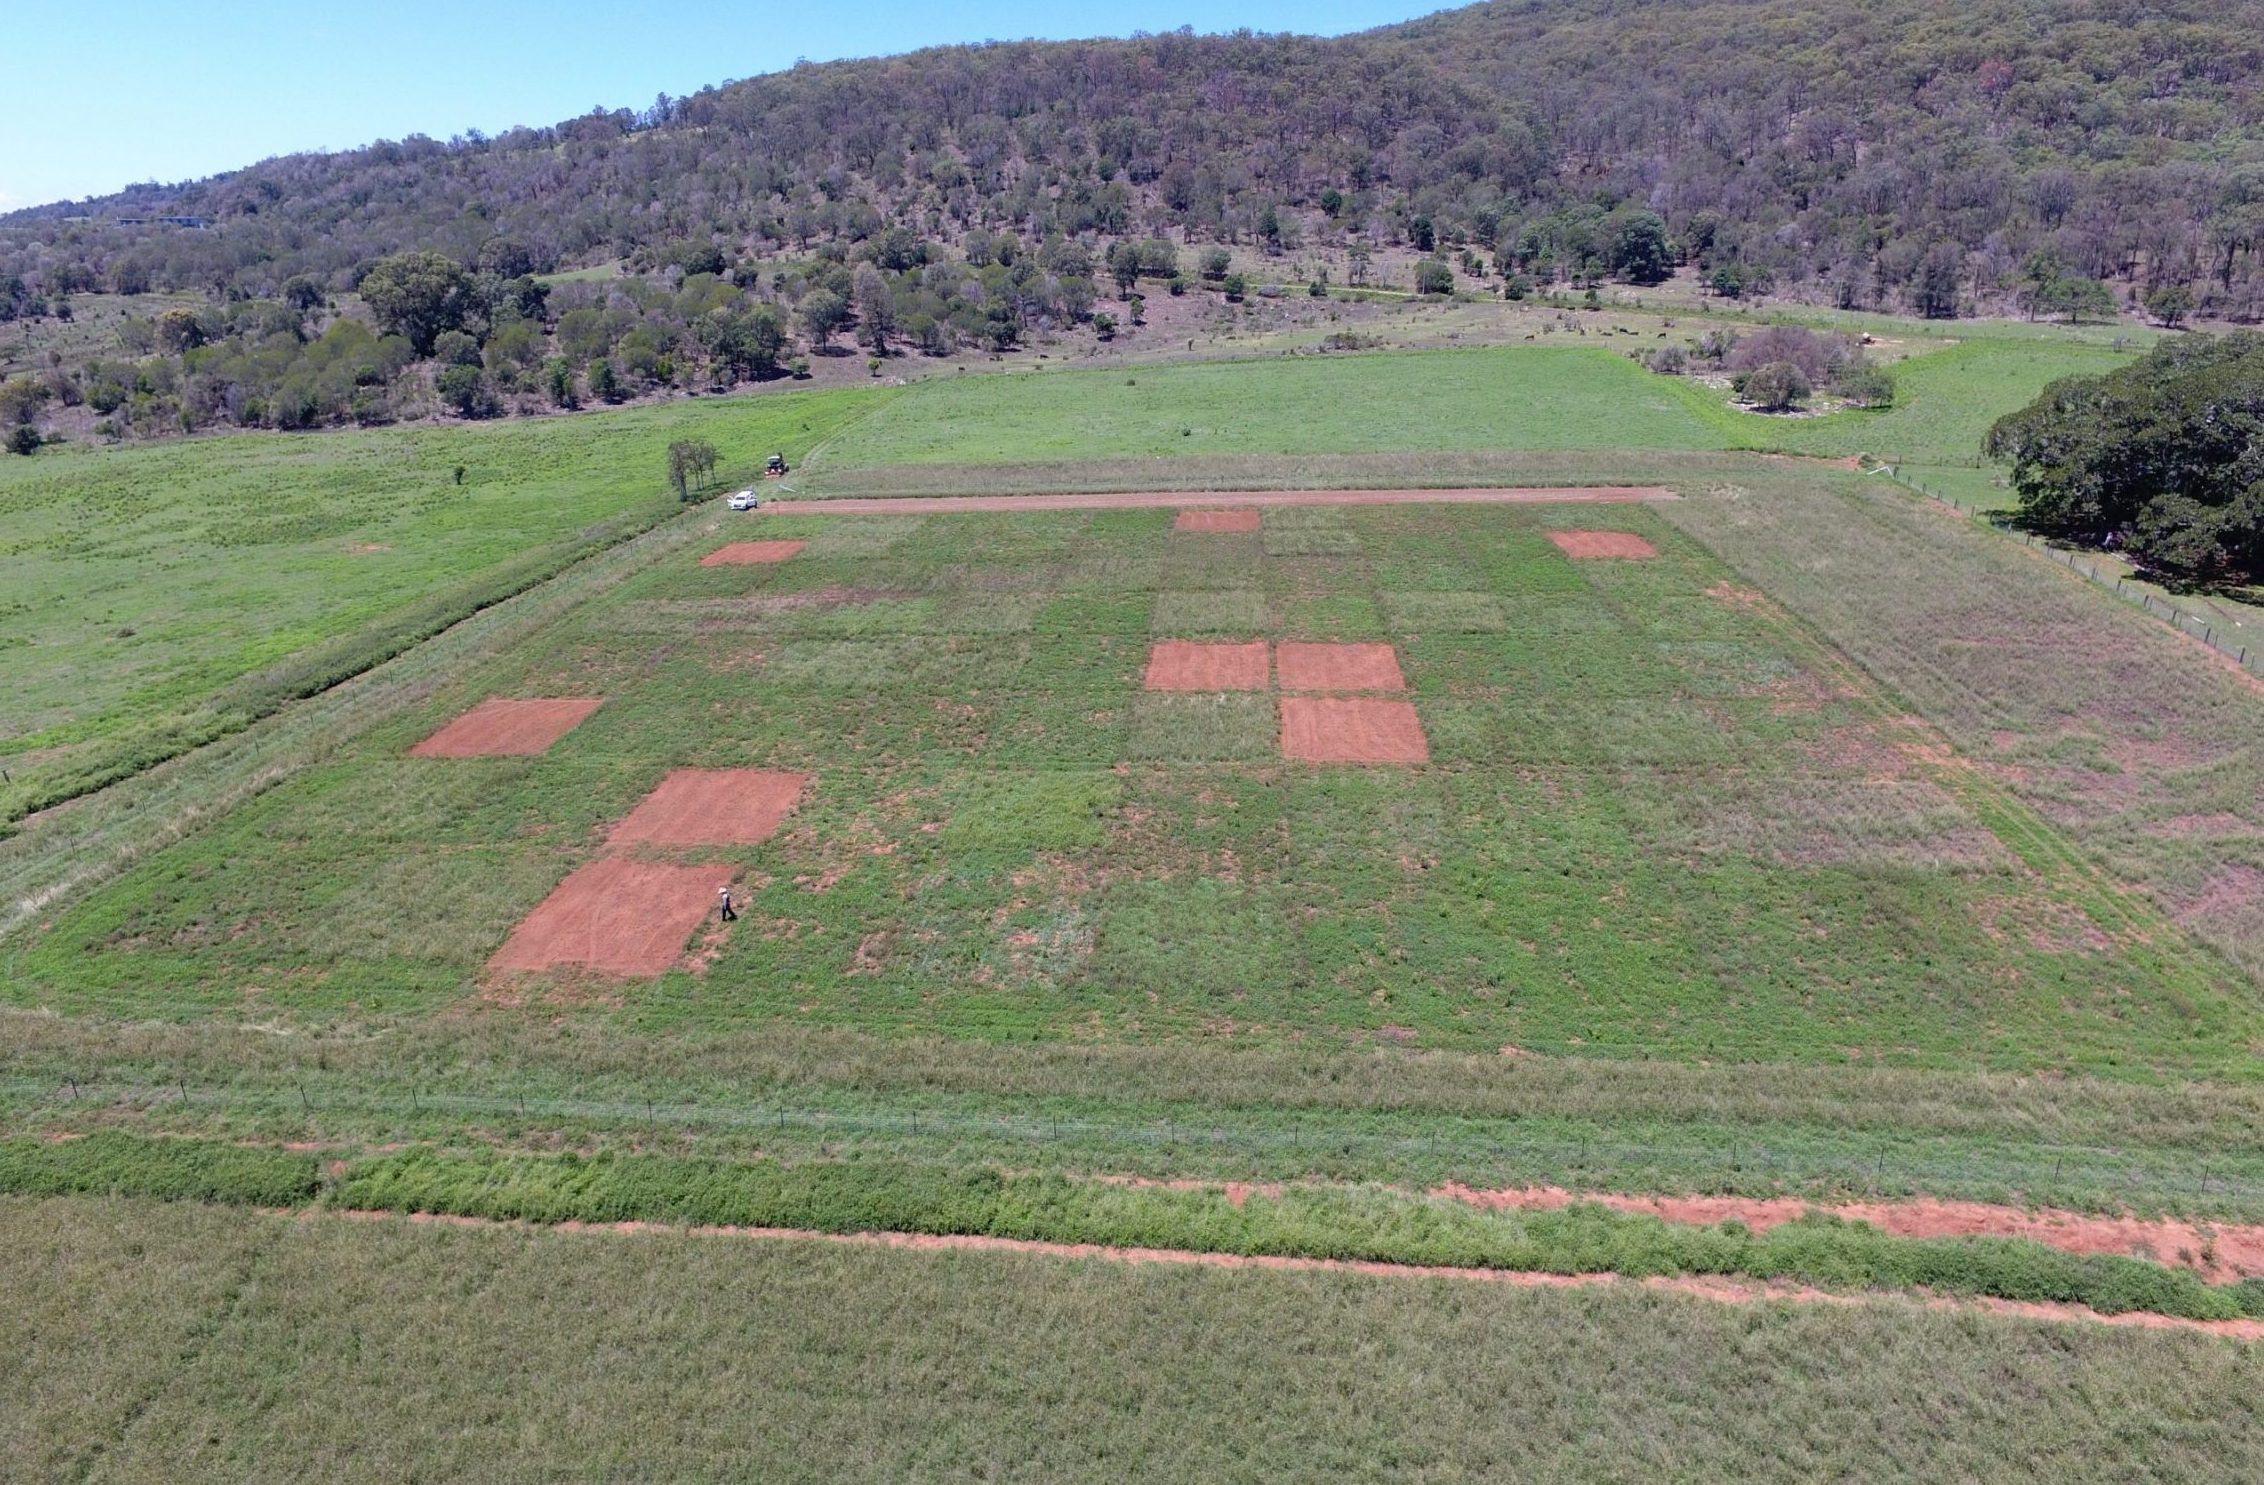 Research trial at Boonah